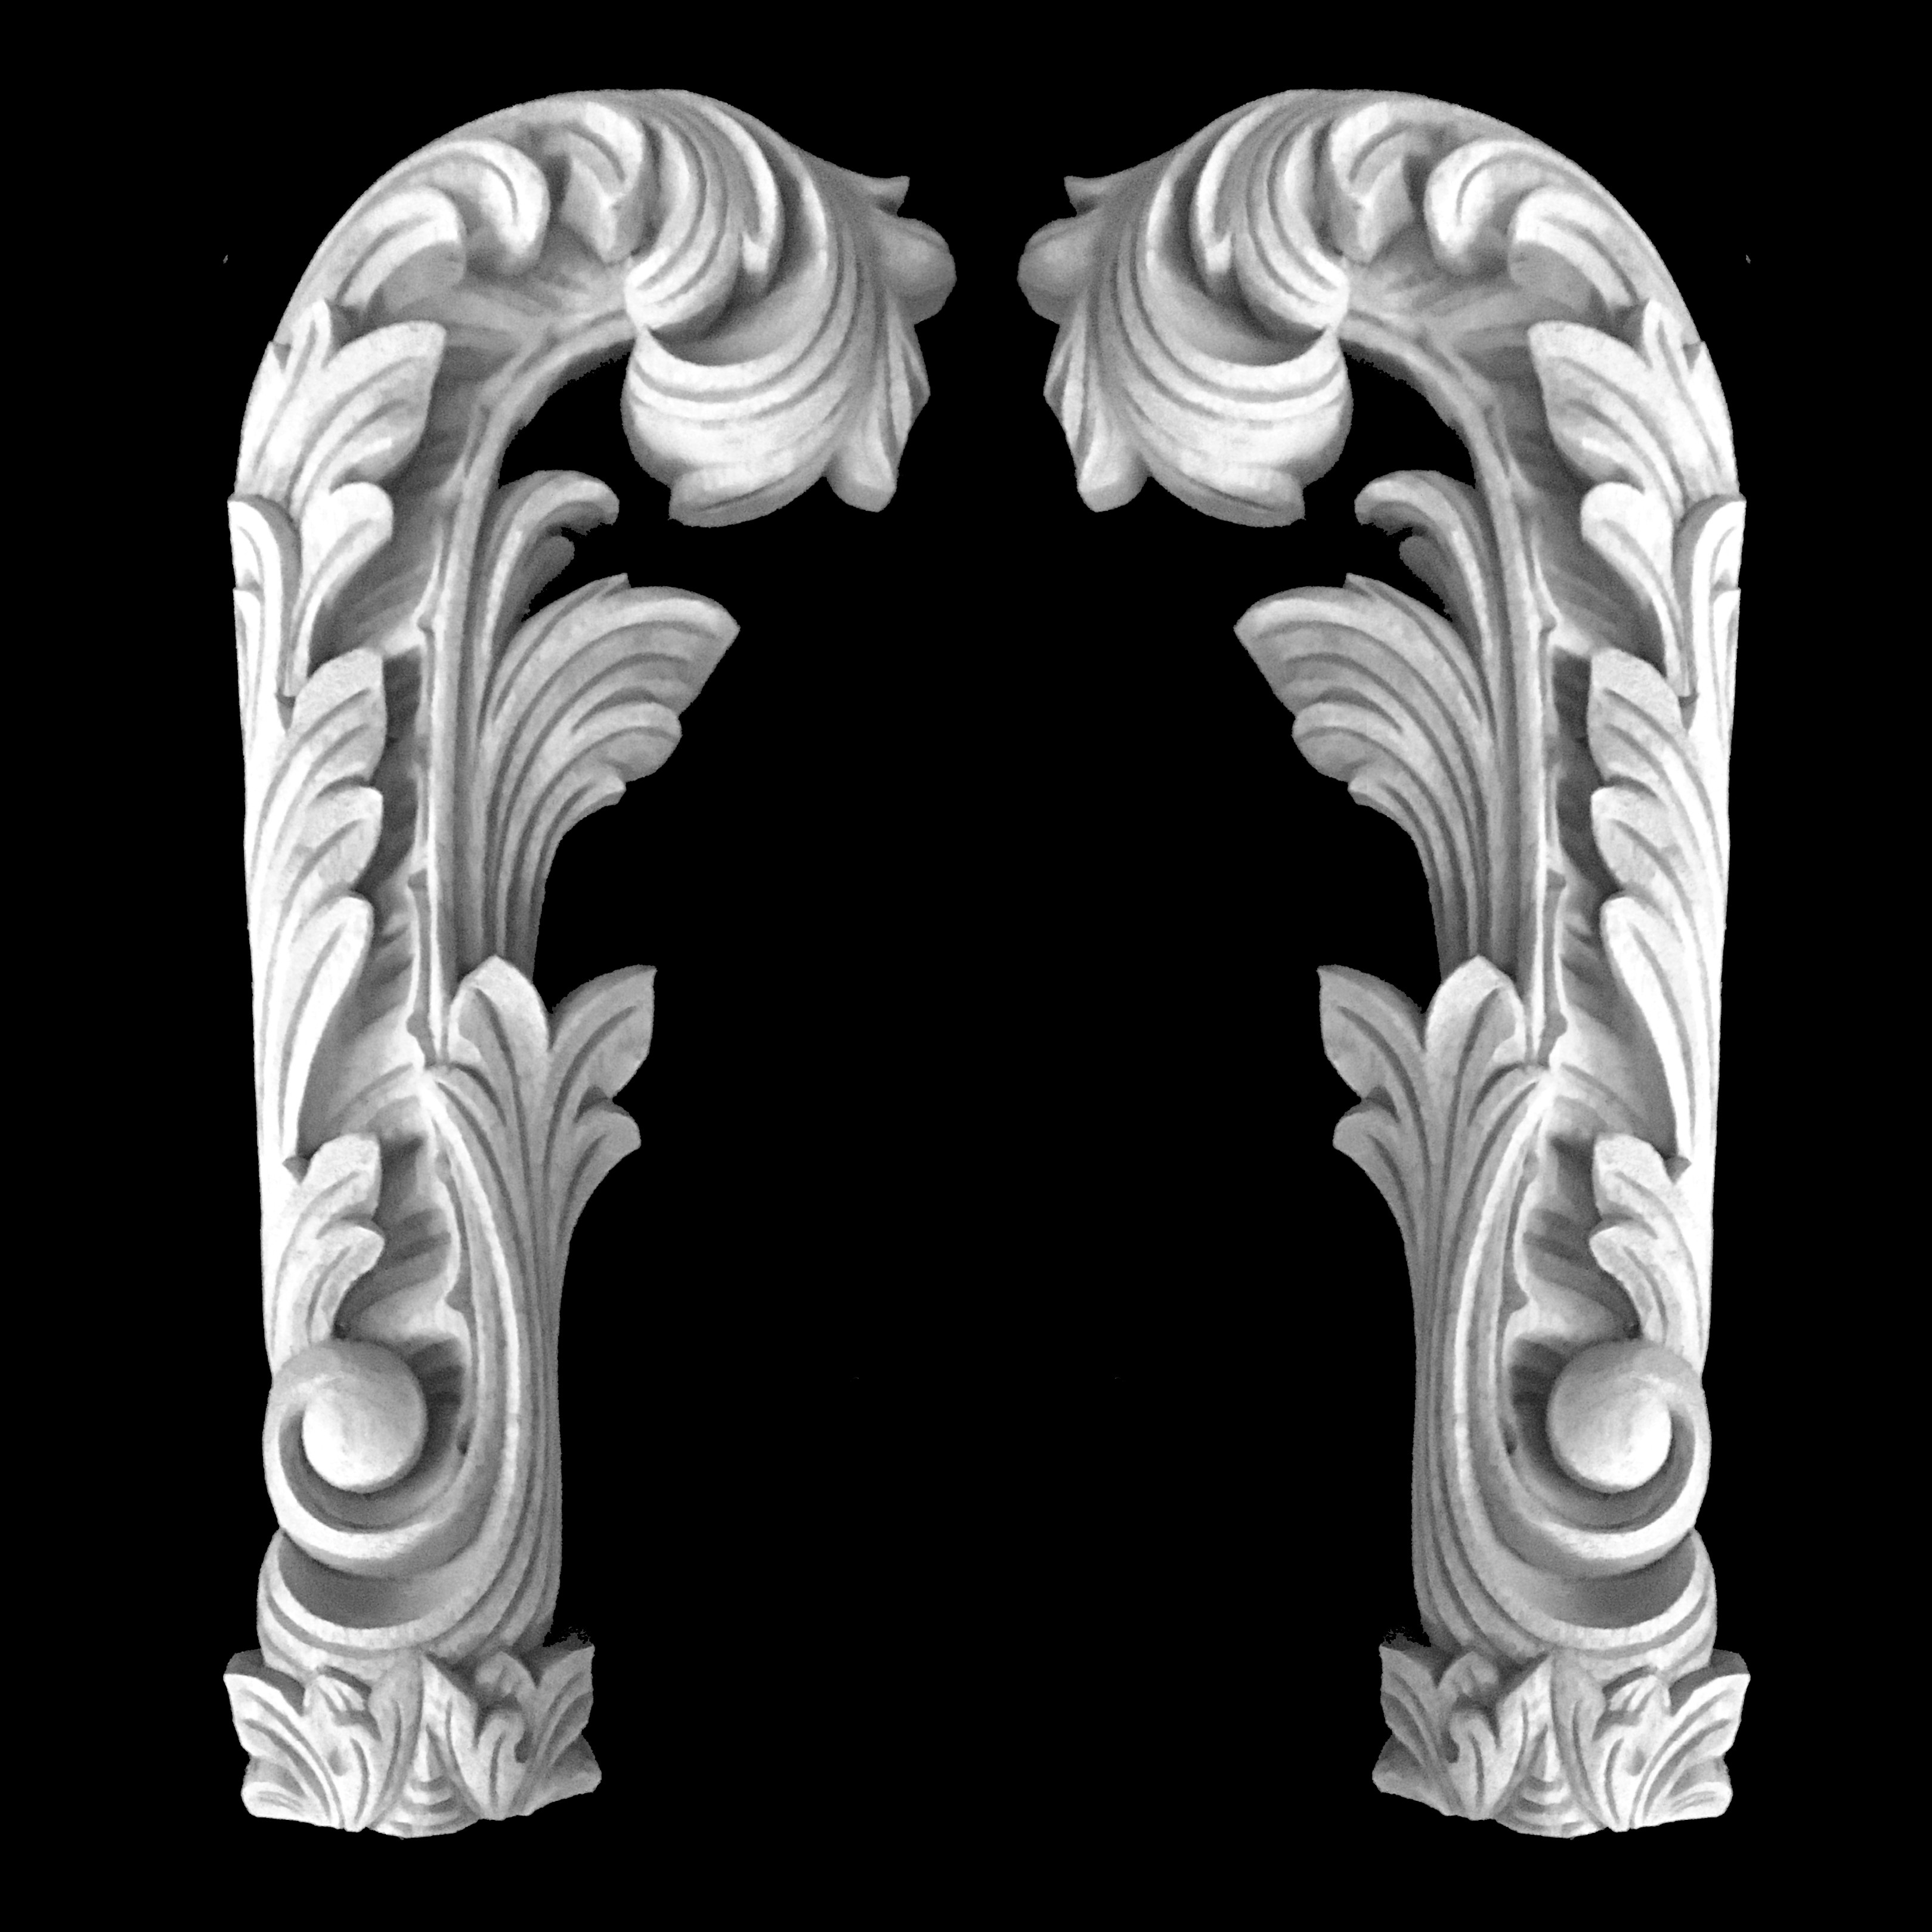 CE-306 Series Acanthus Leaf Flexible Resin Corner Elements